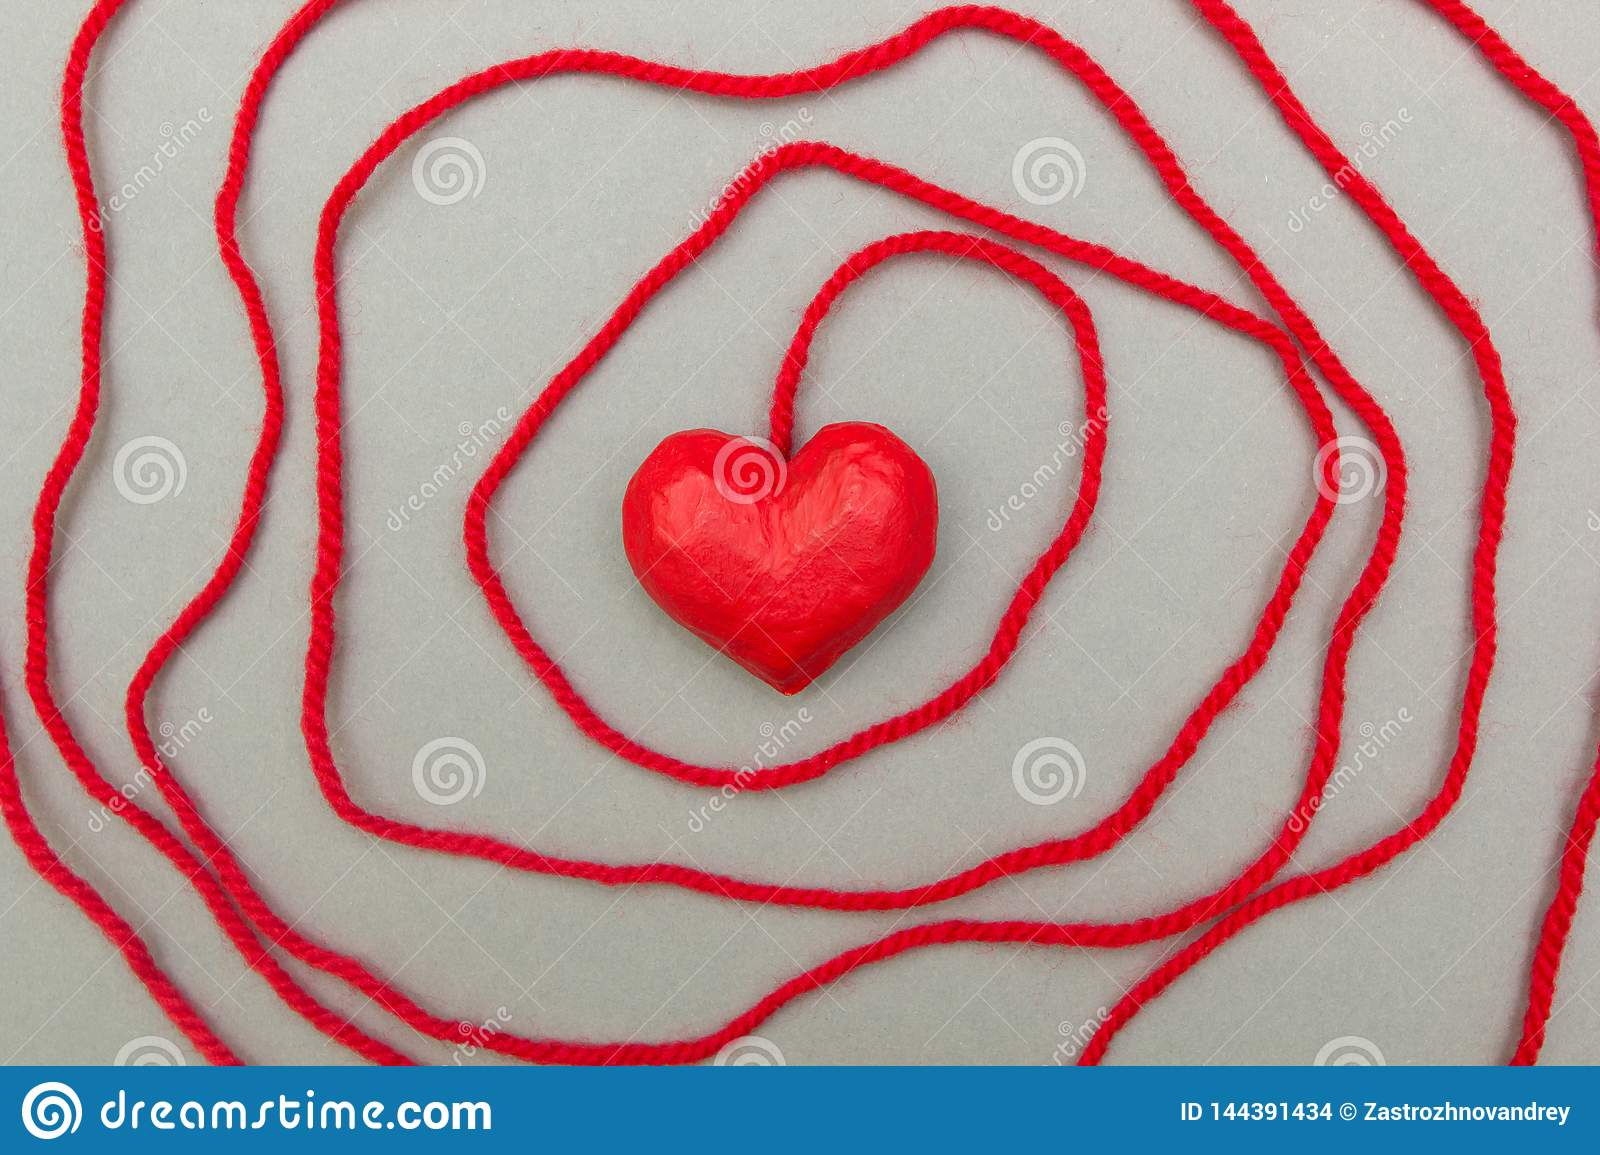 Red heart wrapped around with rope